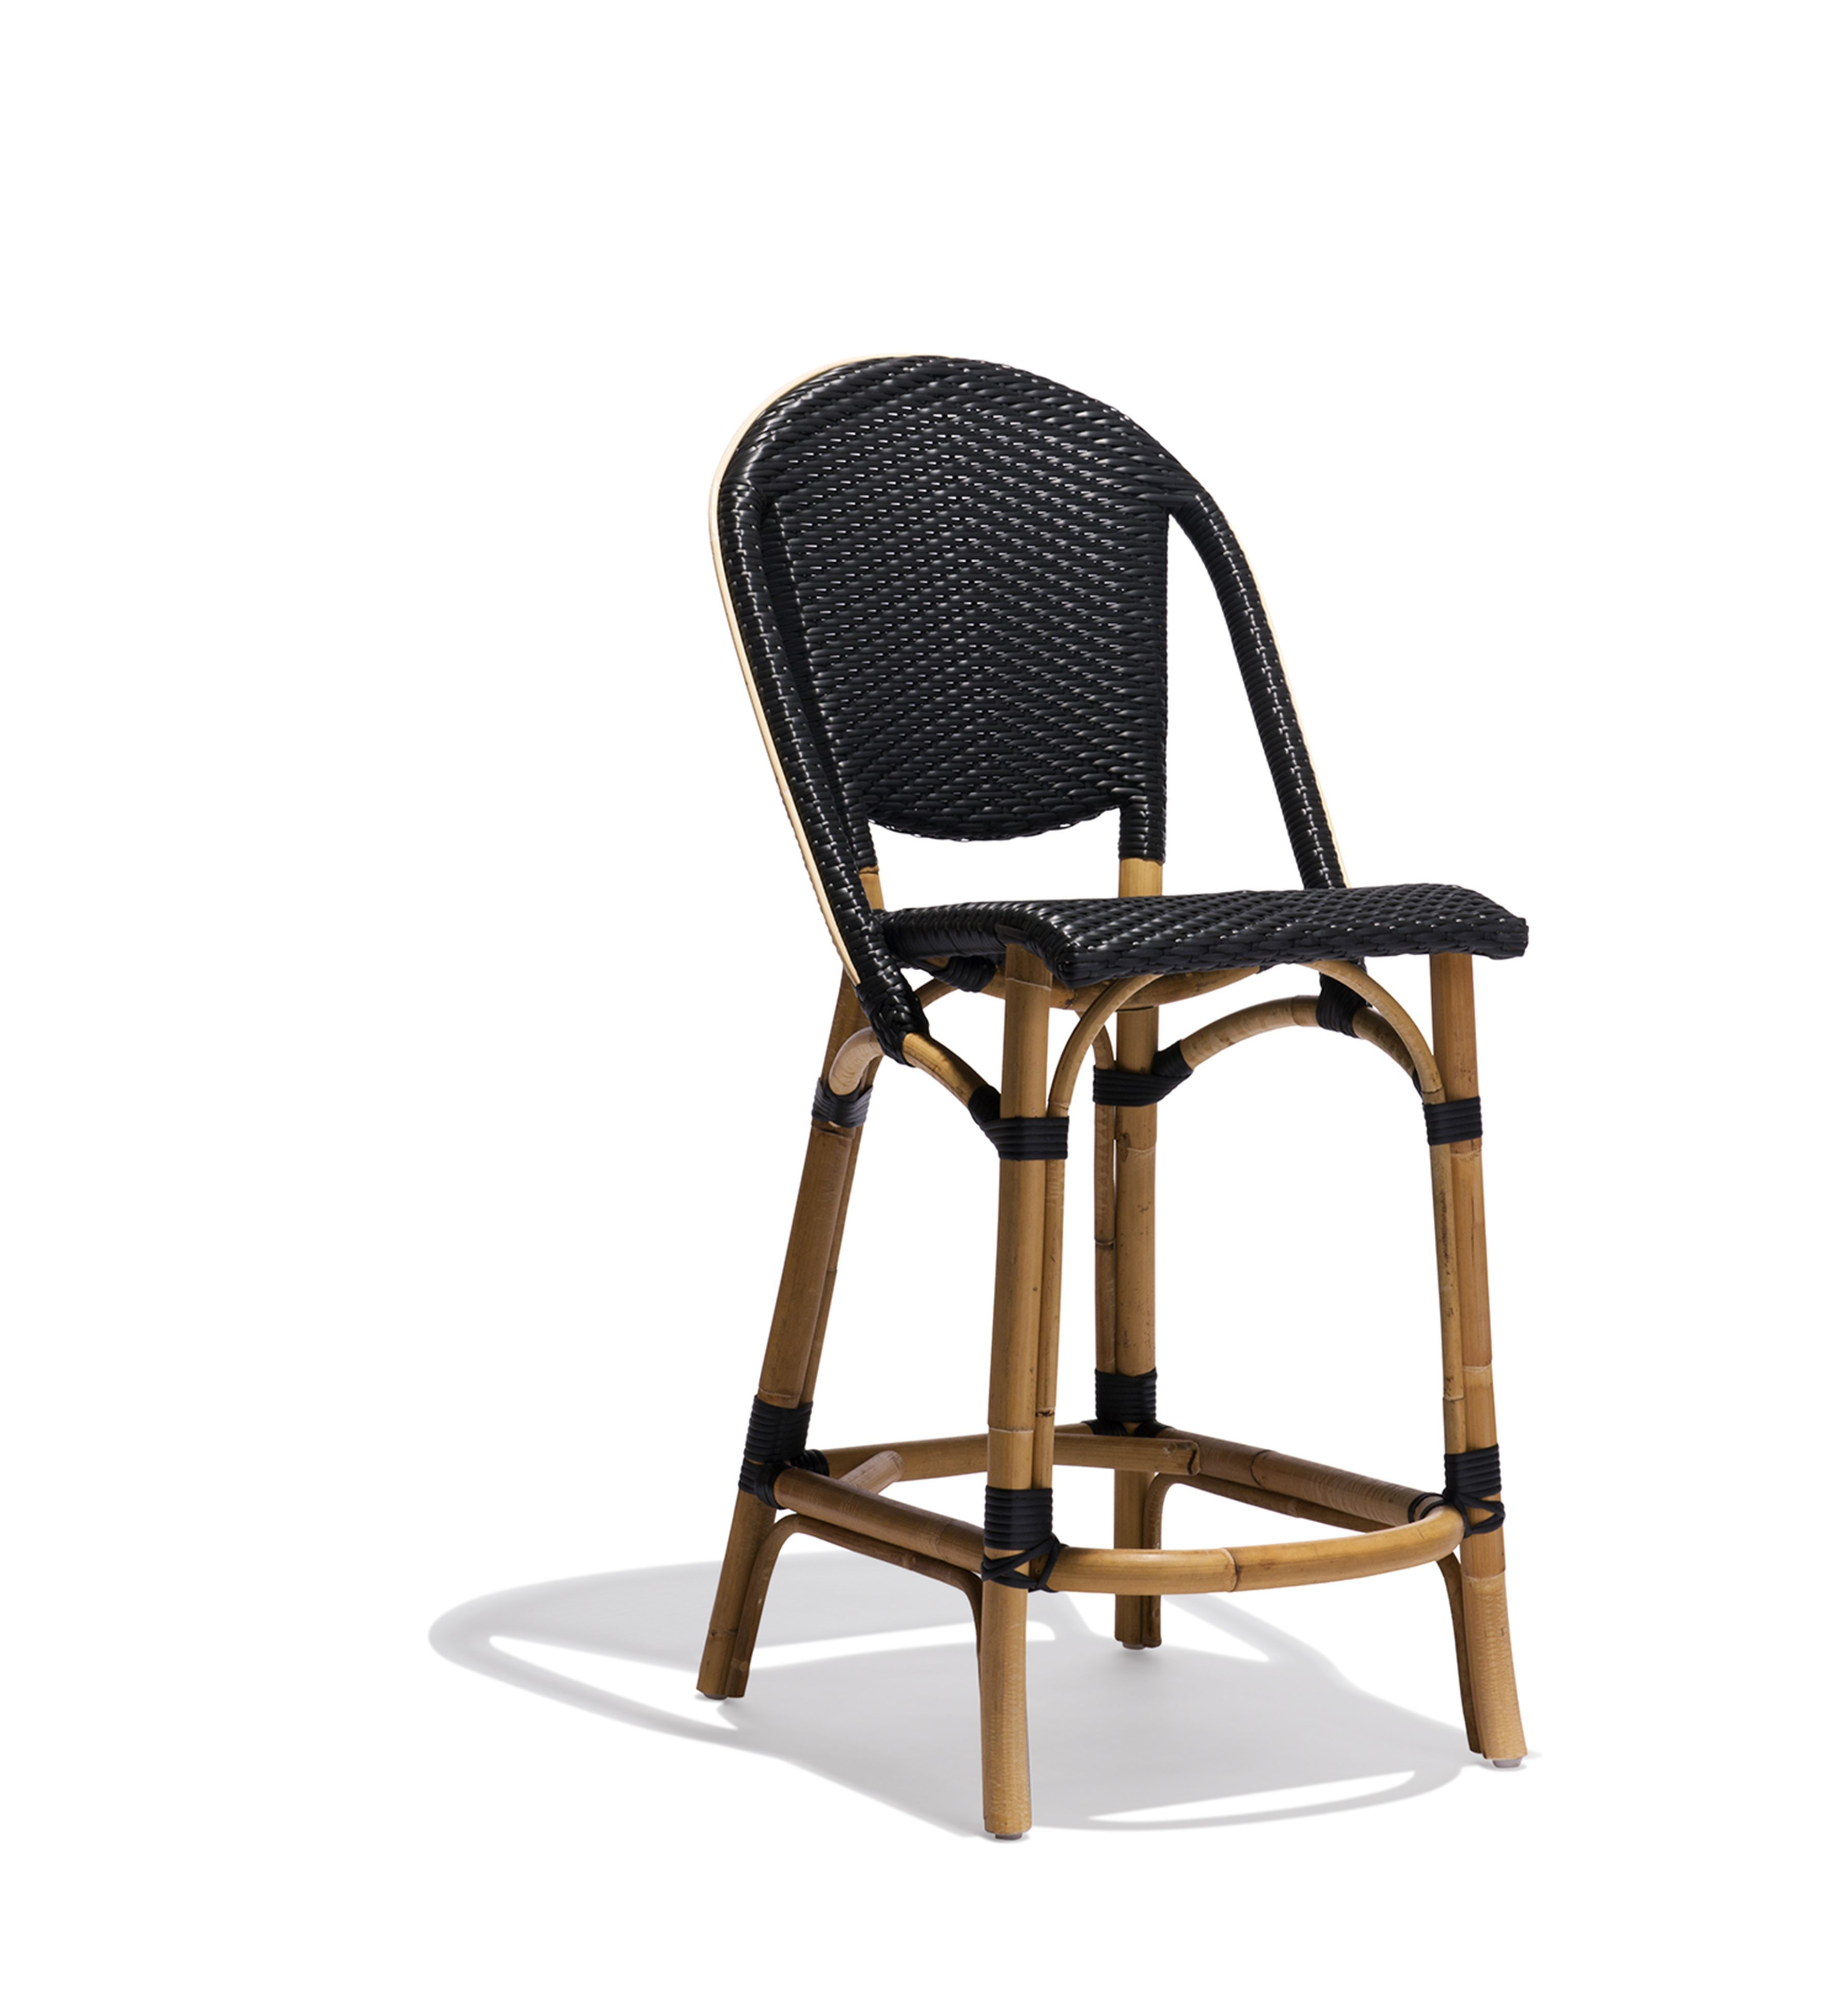 of commercial chair backs cheap counter best inspirations size wooden island high set fabric pub restaurant snack height dandy white bar swivel for medium with back stool leather kitchen under canada artistry buy chairs matchless shop most beach stools